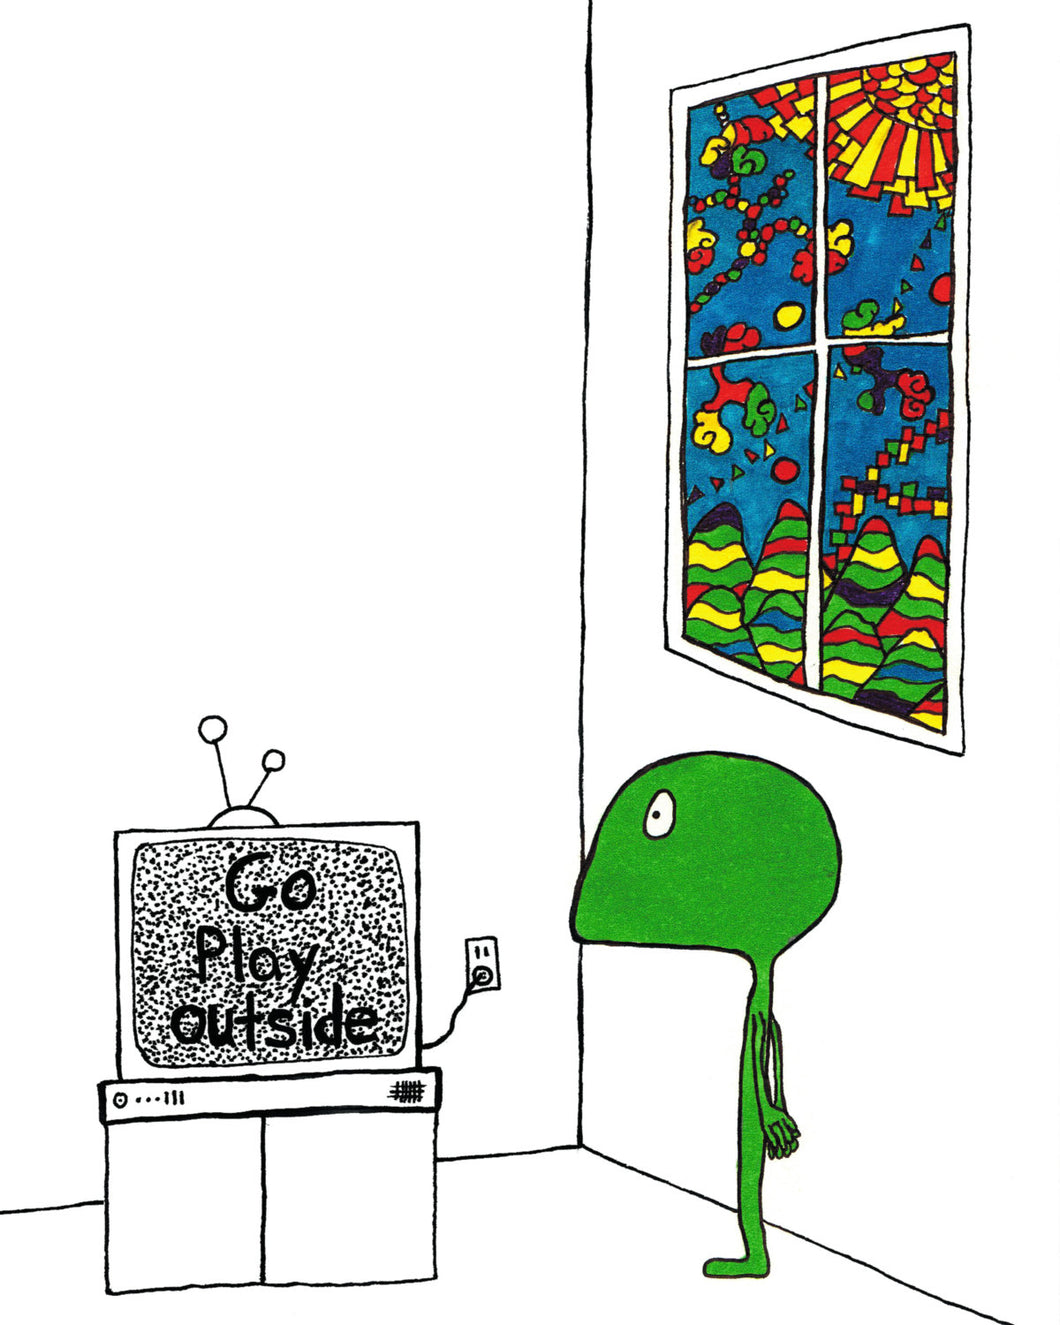 Someworld print - Go play outside